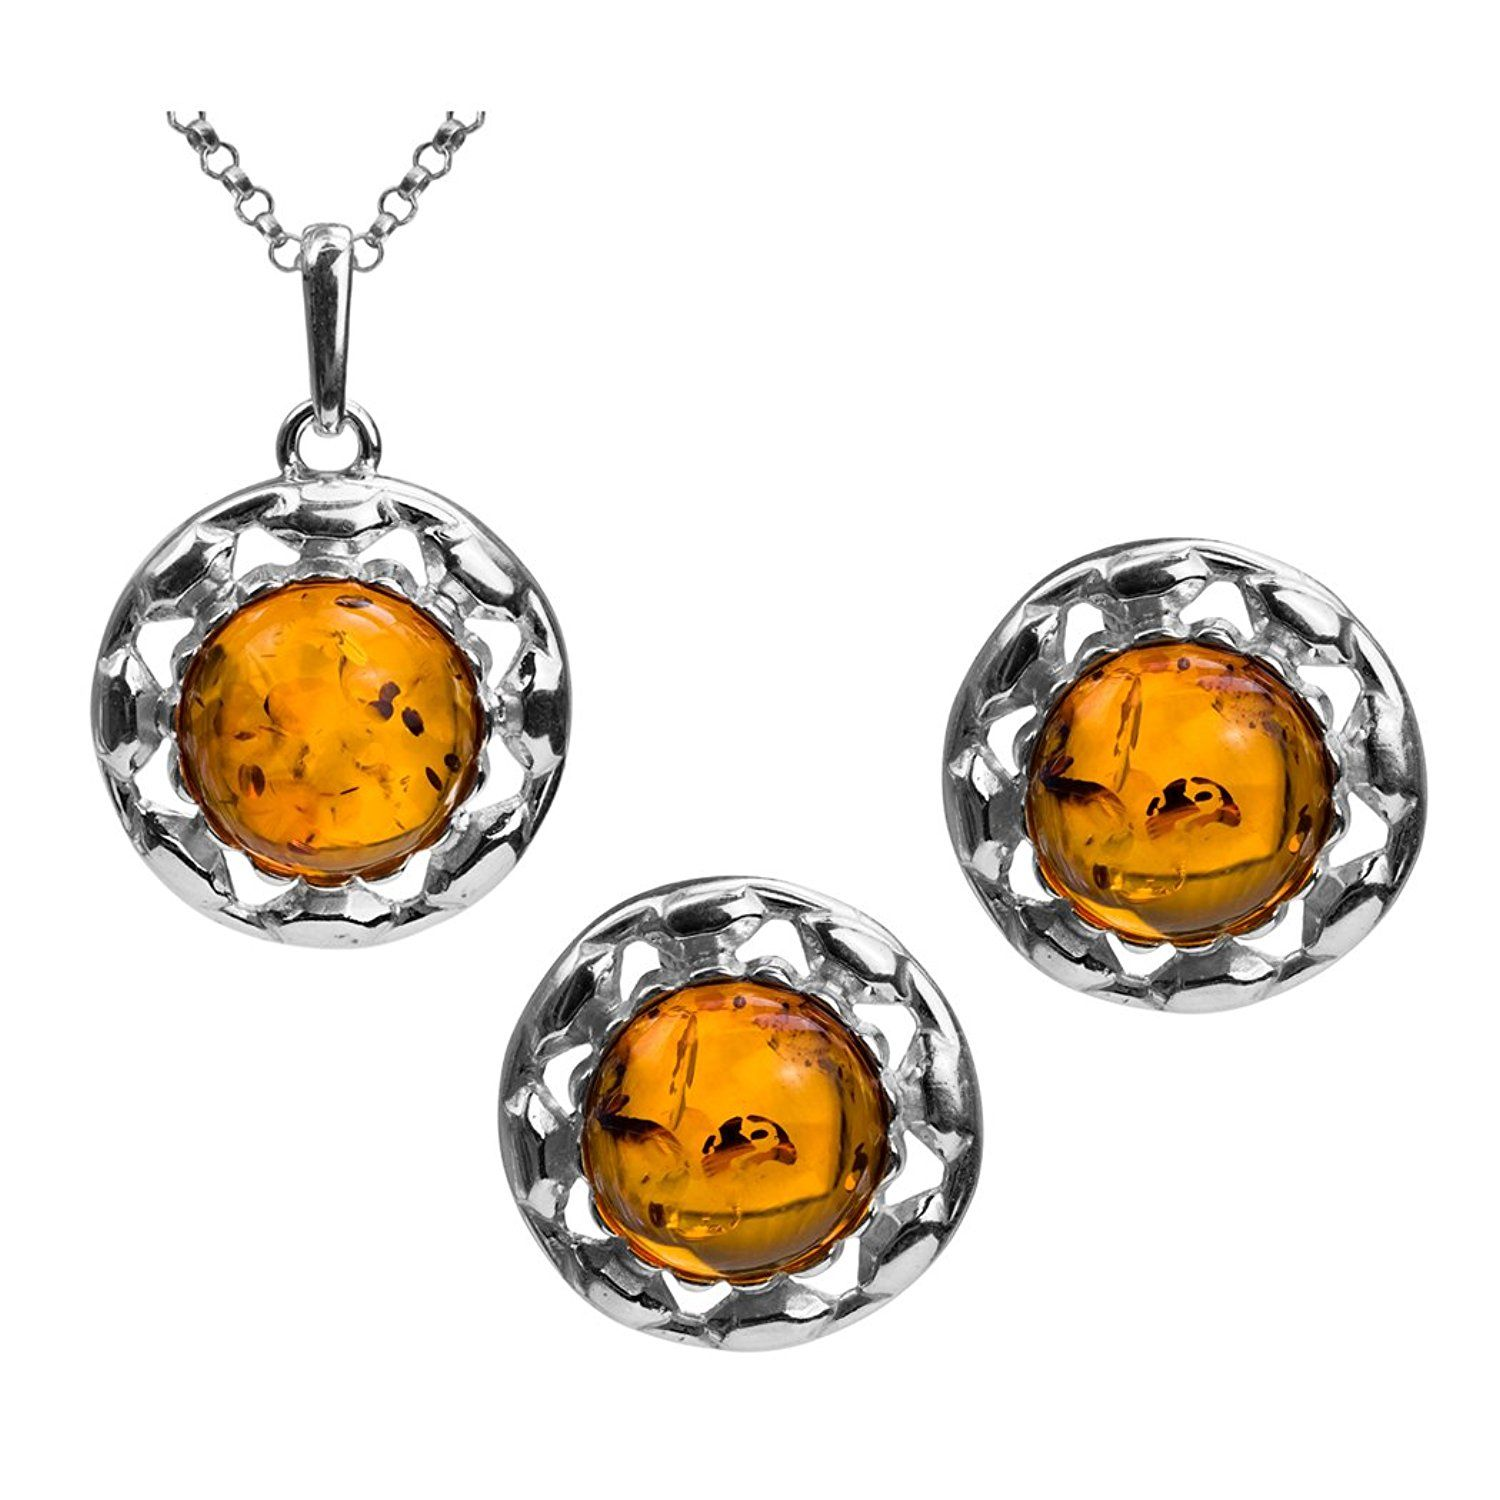 Amber Sterling Silver Oval Earrings Pendant Necklace Set Chain 46 cm Rr3MuglcNQ